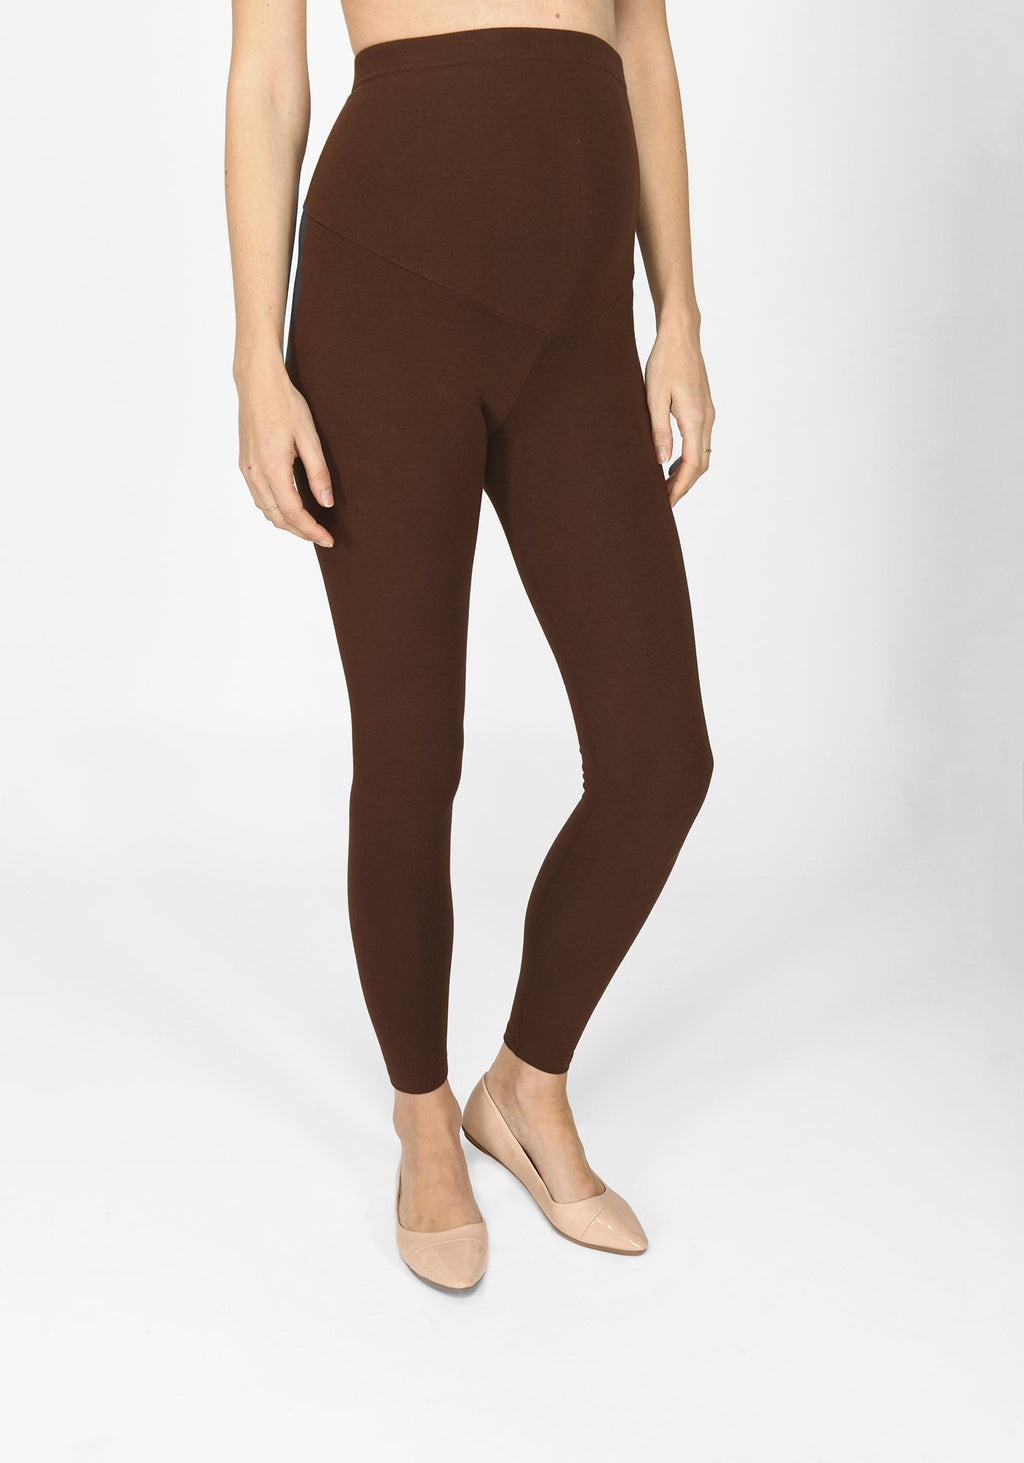 chocolate brown full length maternity leggings 1